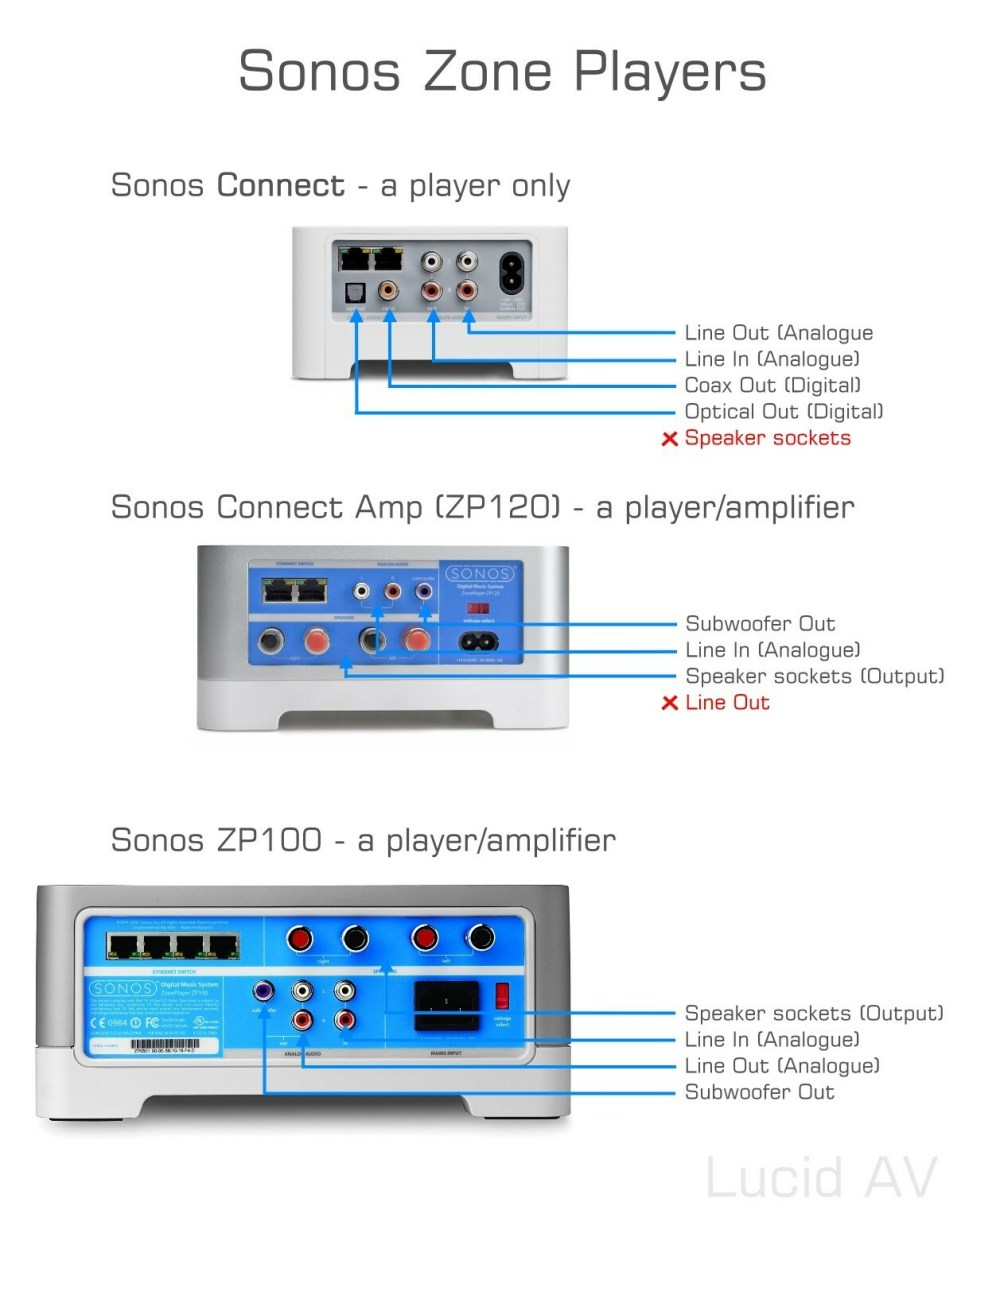 medium resolution of  is connect via speaker sockets and via line out then you must have a sonos zp100 because that s the only player with speaker sockets and a line out